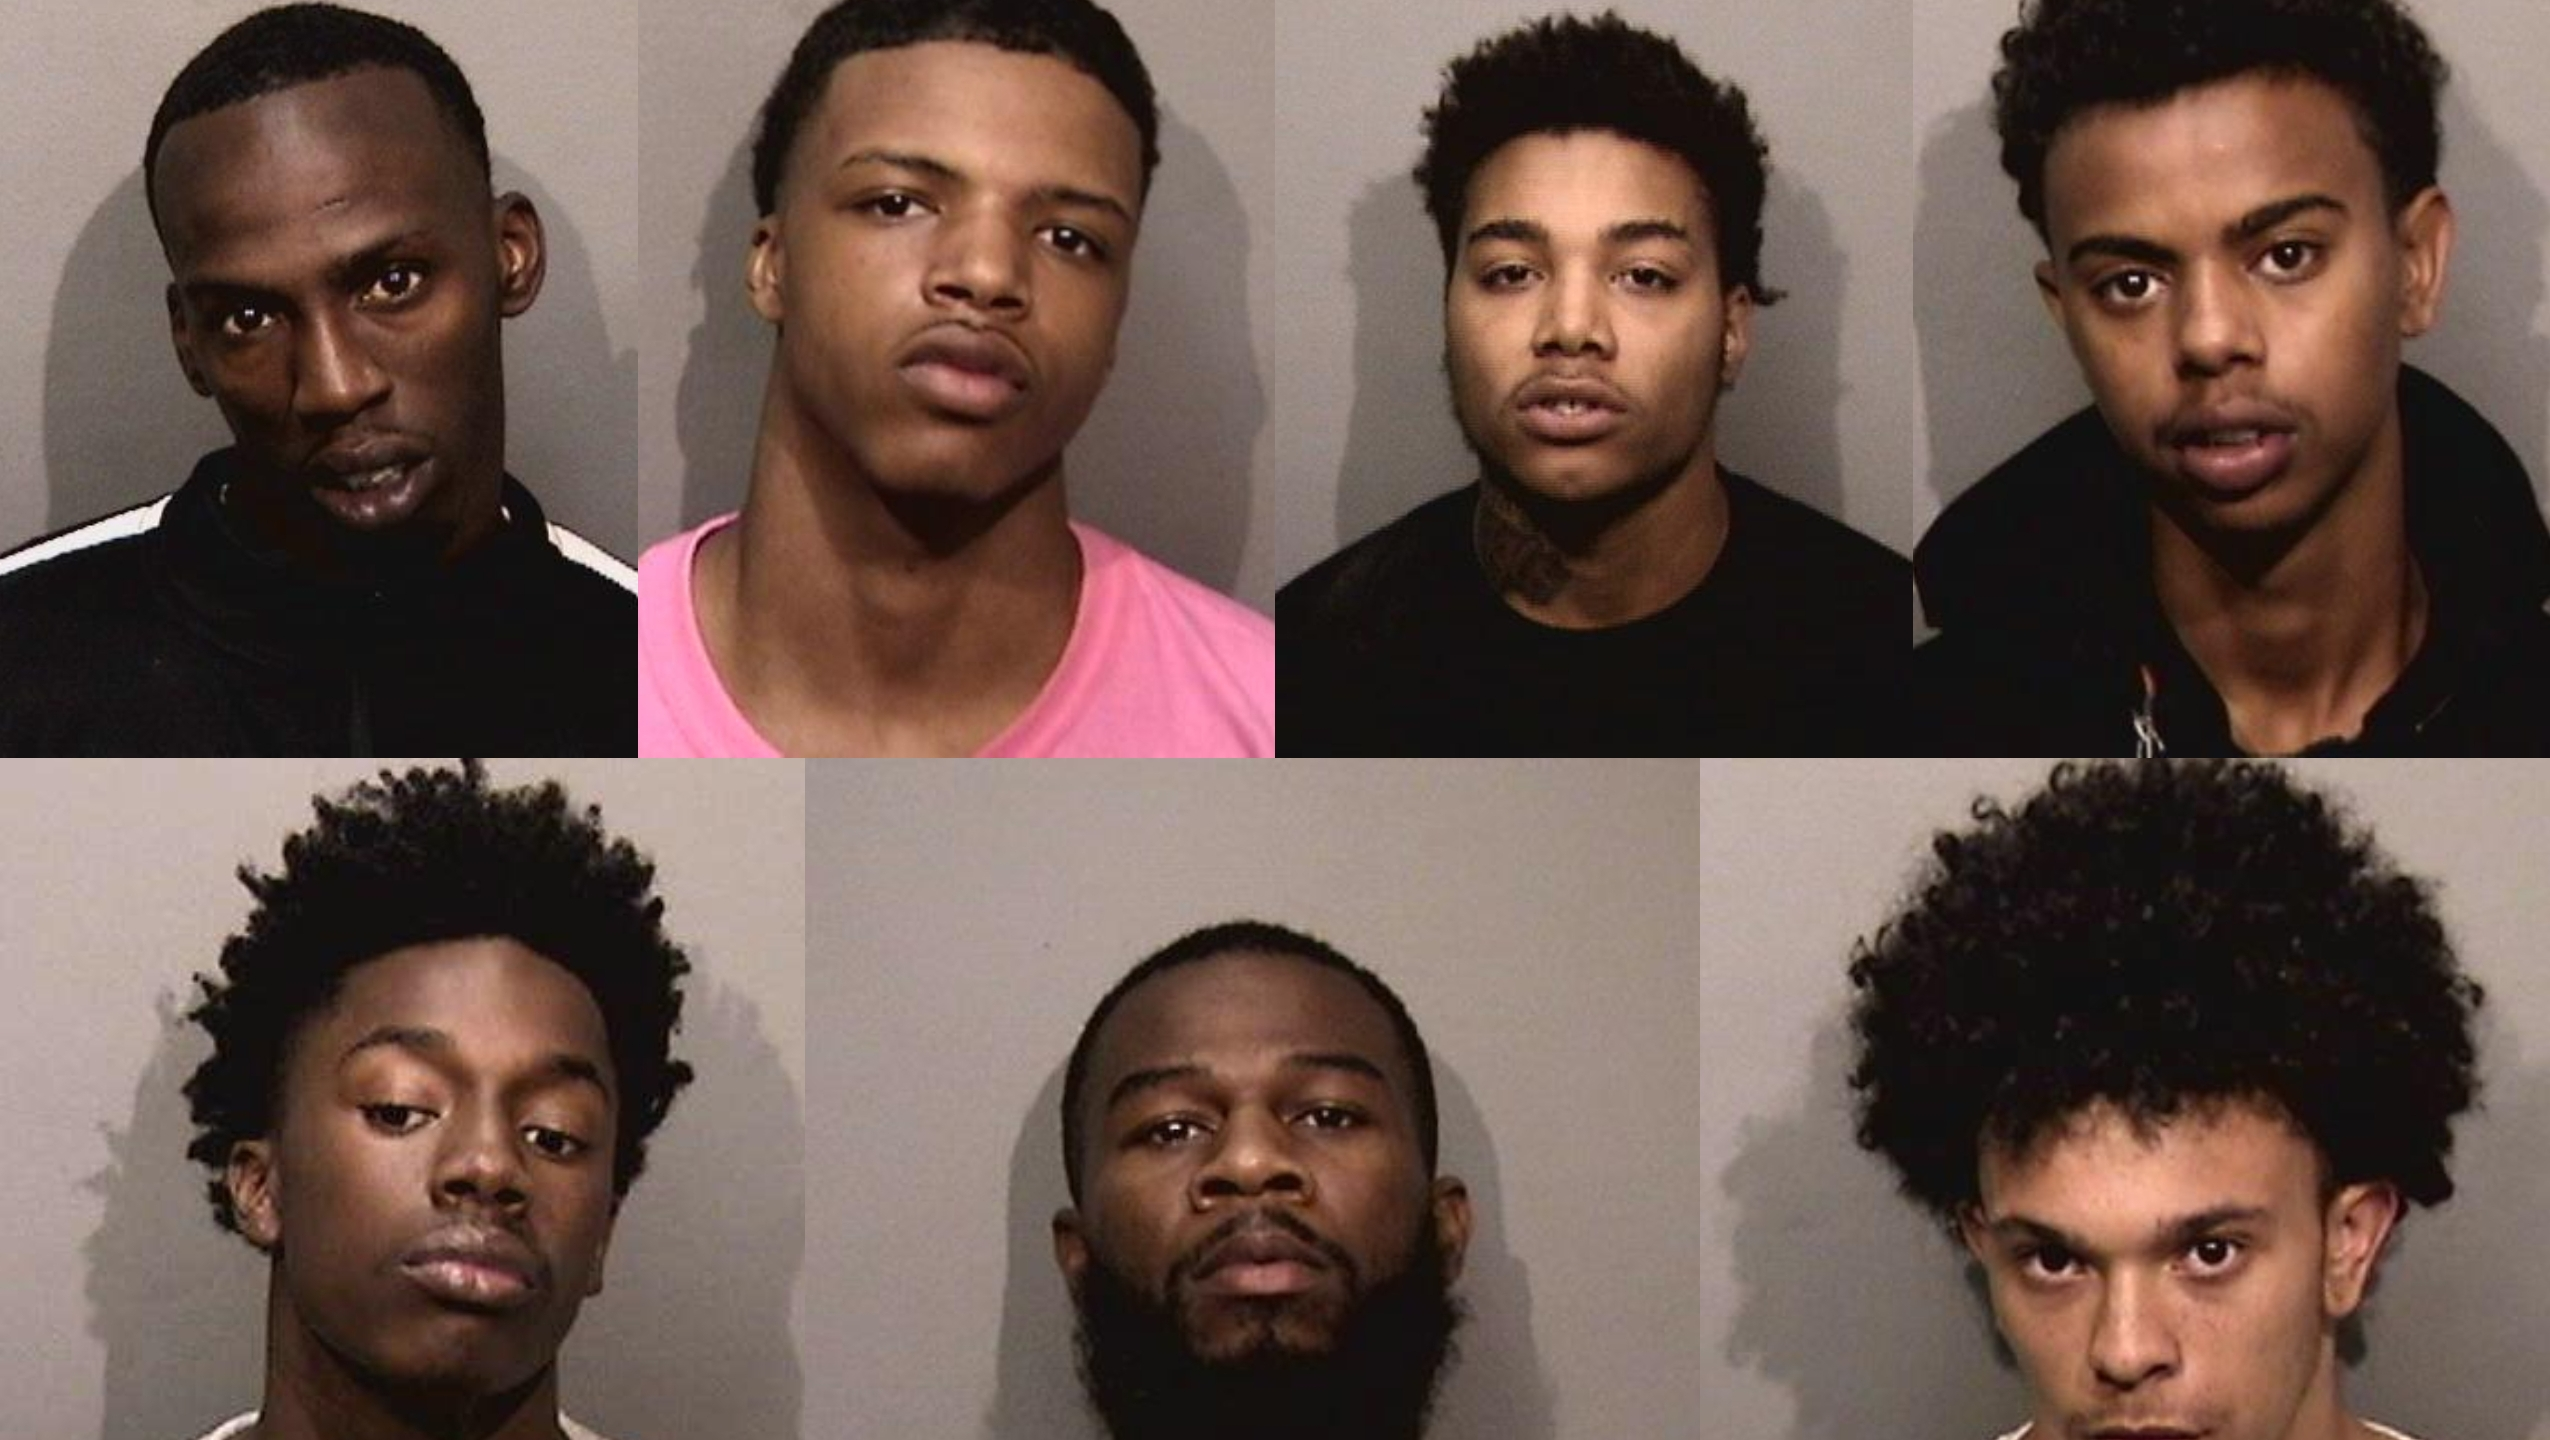 Mugshots of suspects arrested in $1M Apple Store robbery scheme